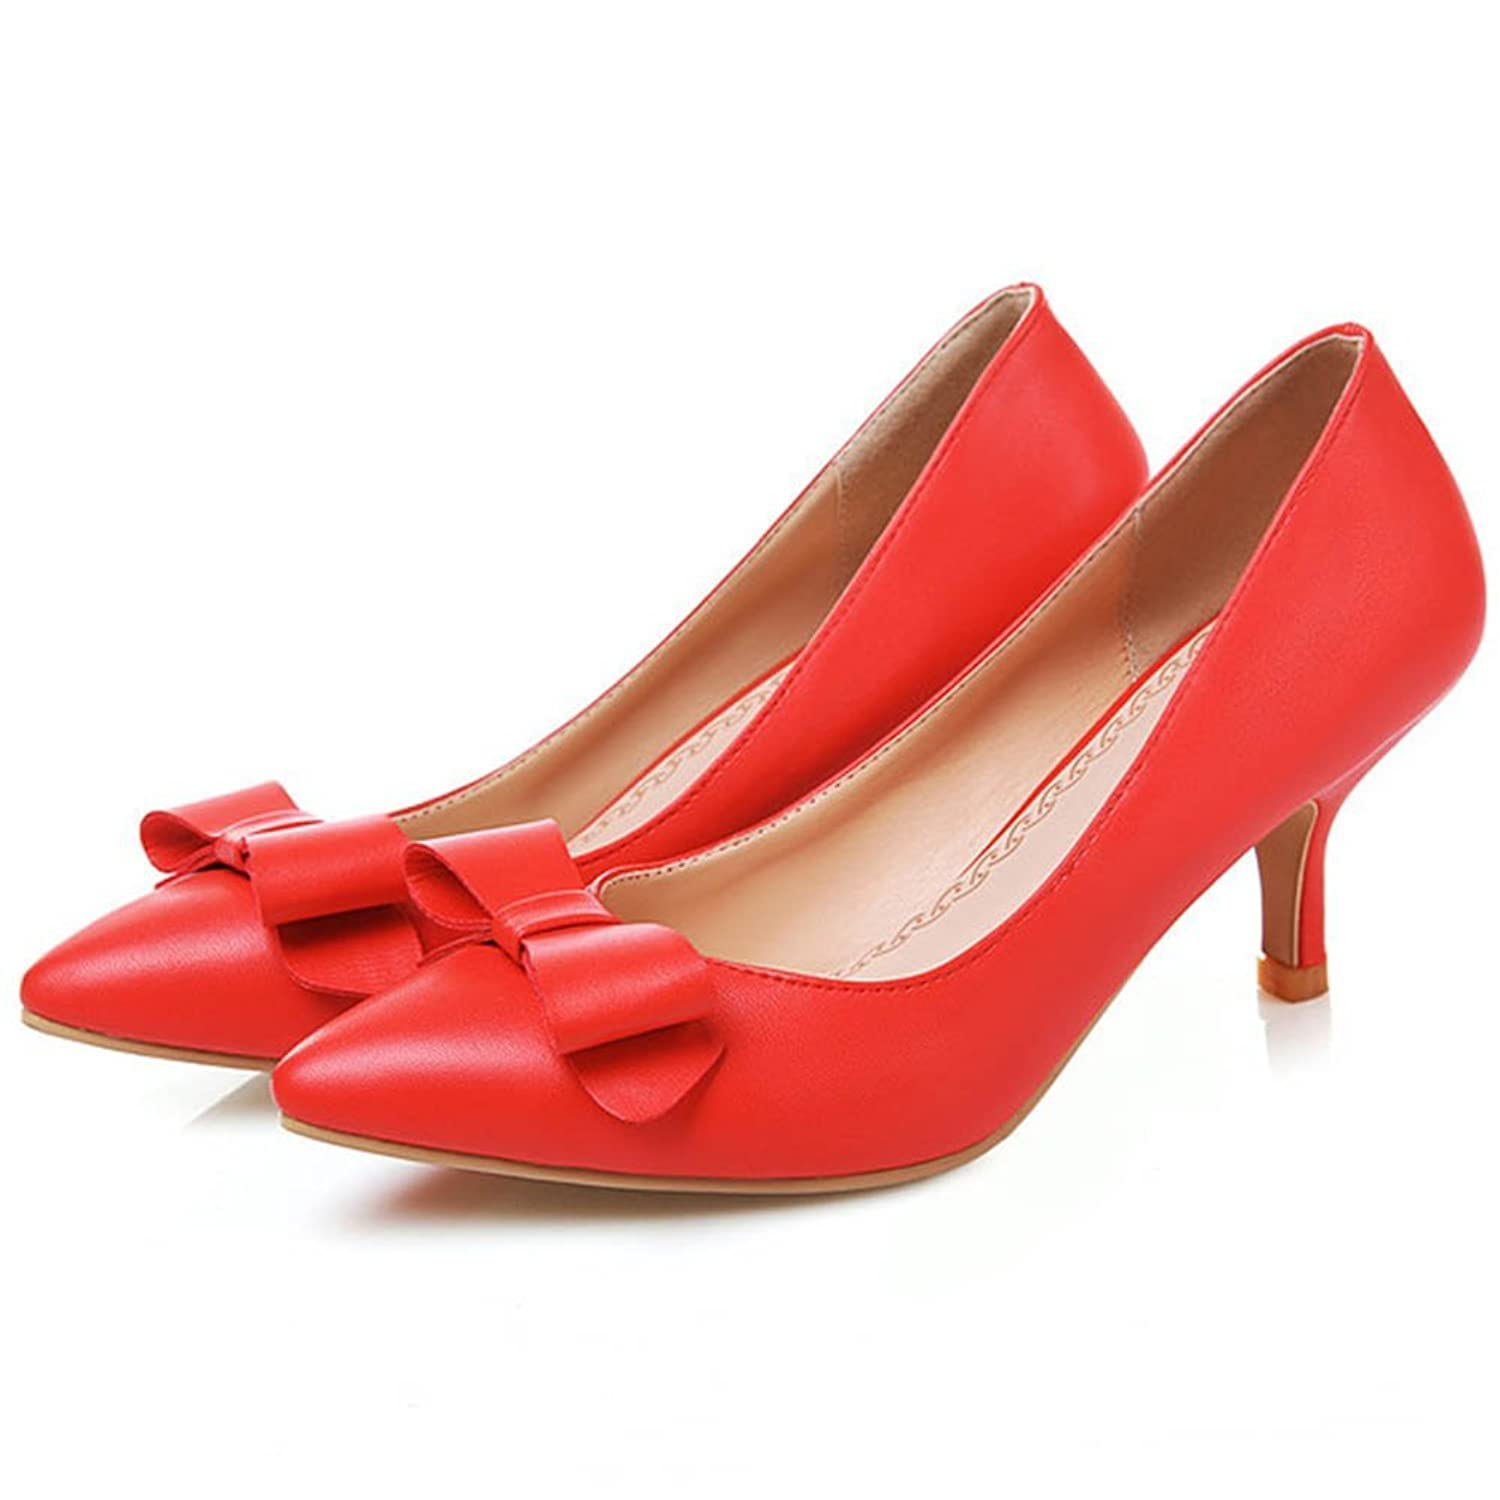 CHFSO Women's Elegant Pointed Toe Kittens Low Cut Pumps Shoes With Bowknot